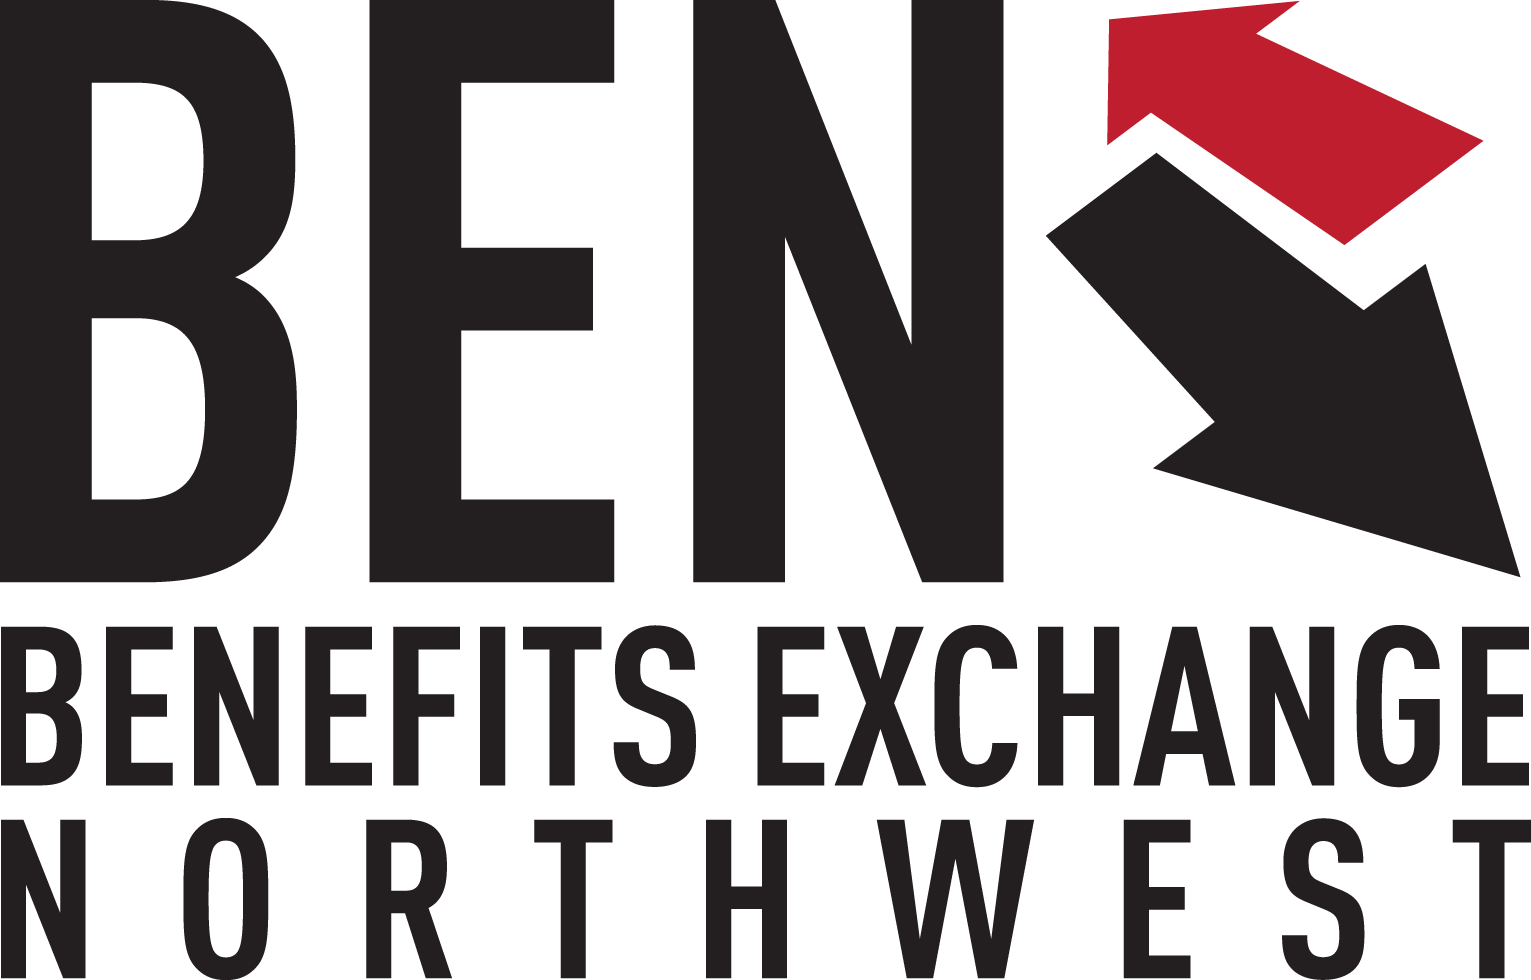 BENEFITS EXCHANGE NETWORK